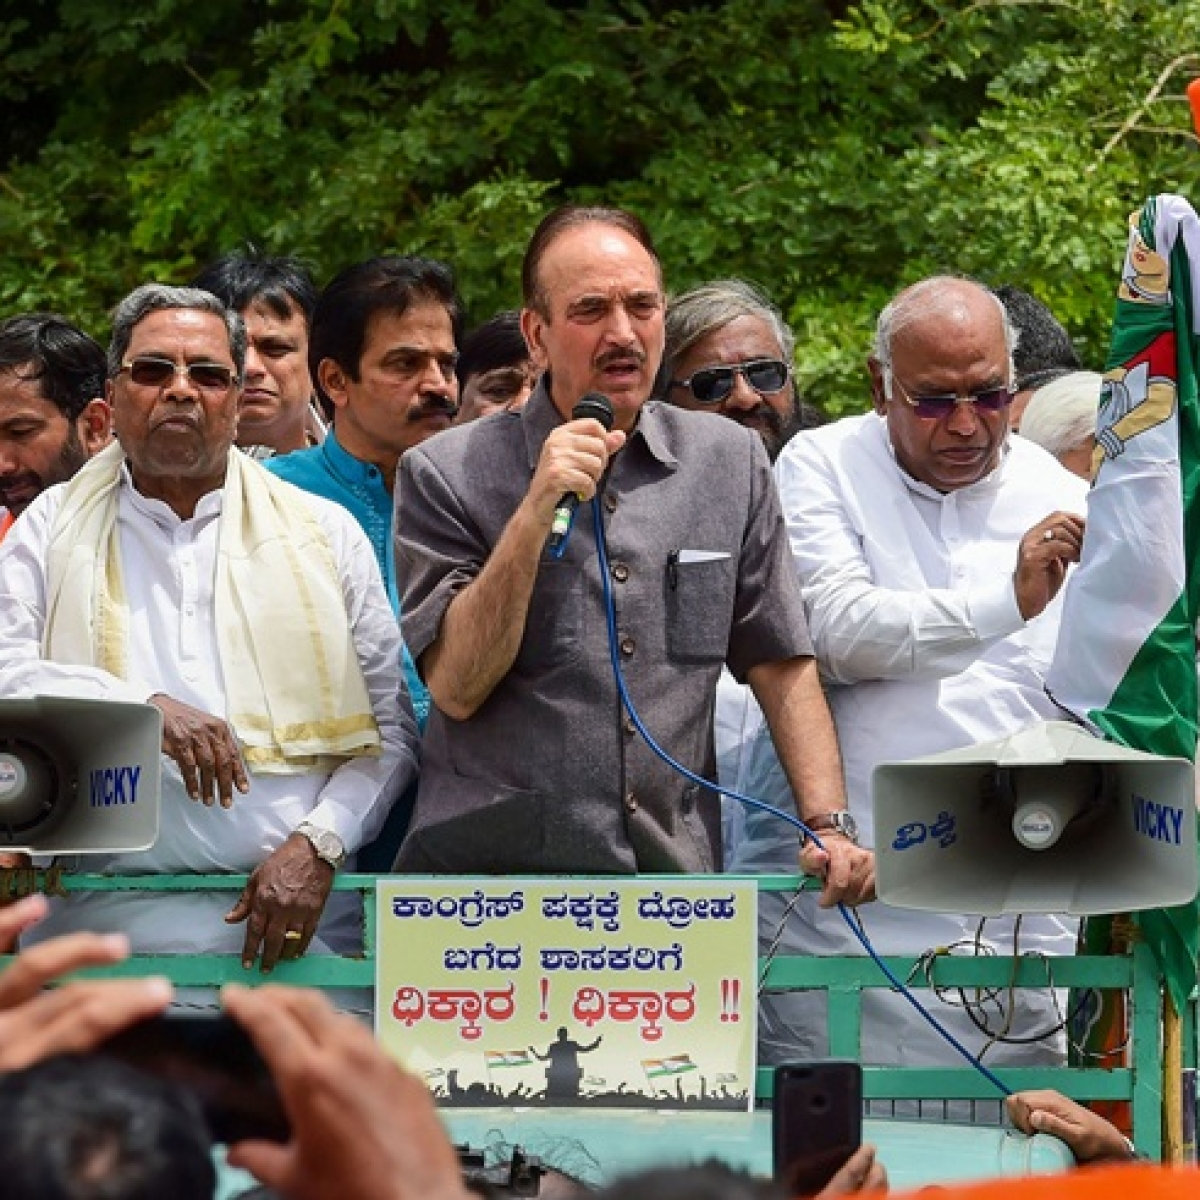 BJP and its leaders hardly care about Constitution: Ghulam Nabi Azad on Karnataka crisis